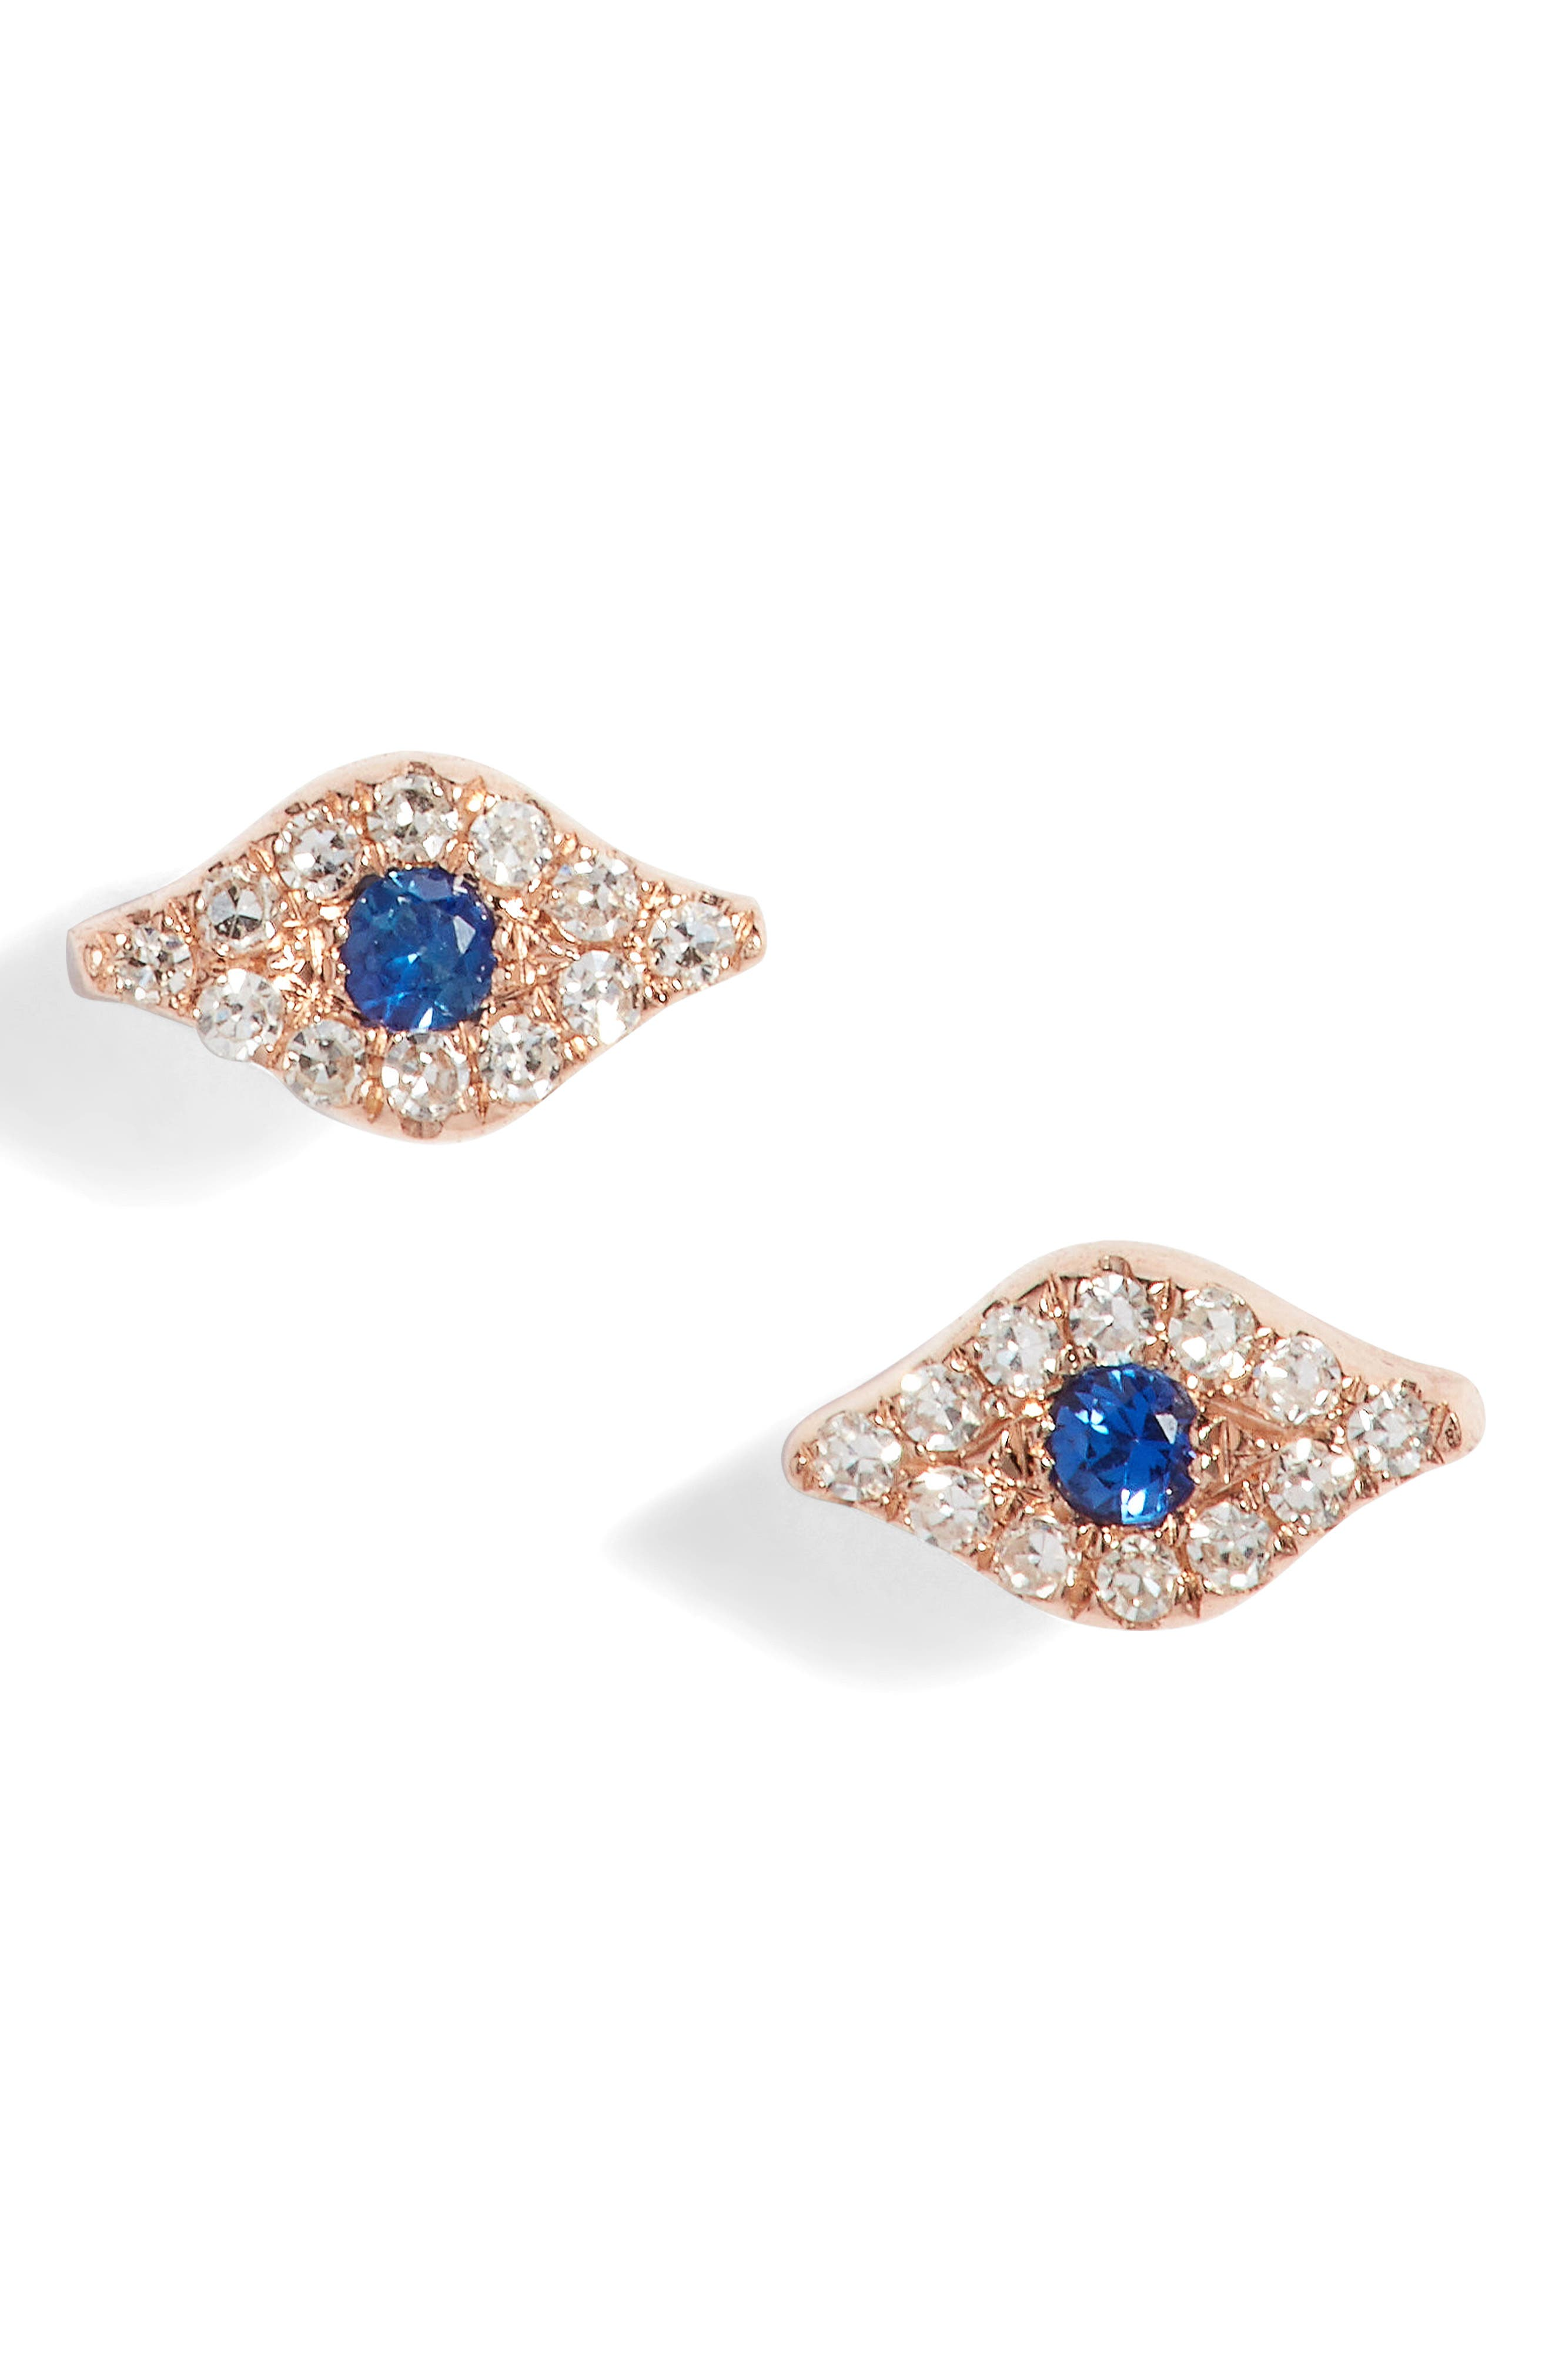 Evil Eye Diamond & Sapphire Stud Earrings,                         Main,                         color, ROSE GOLD